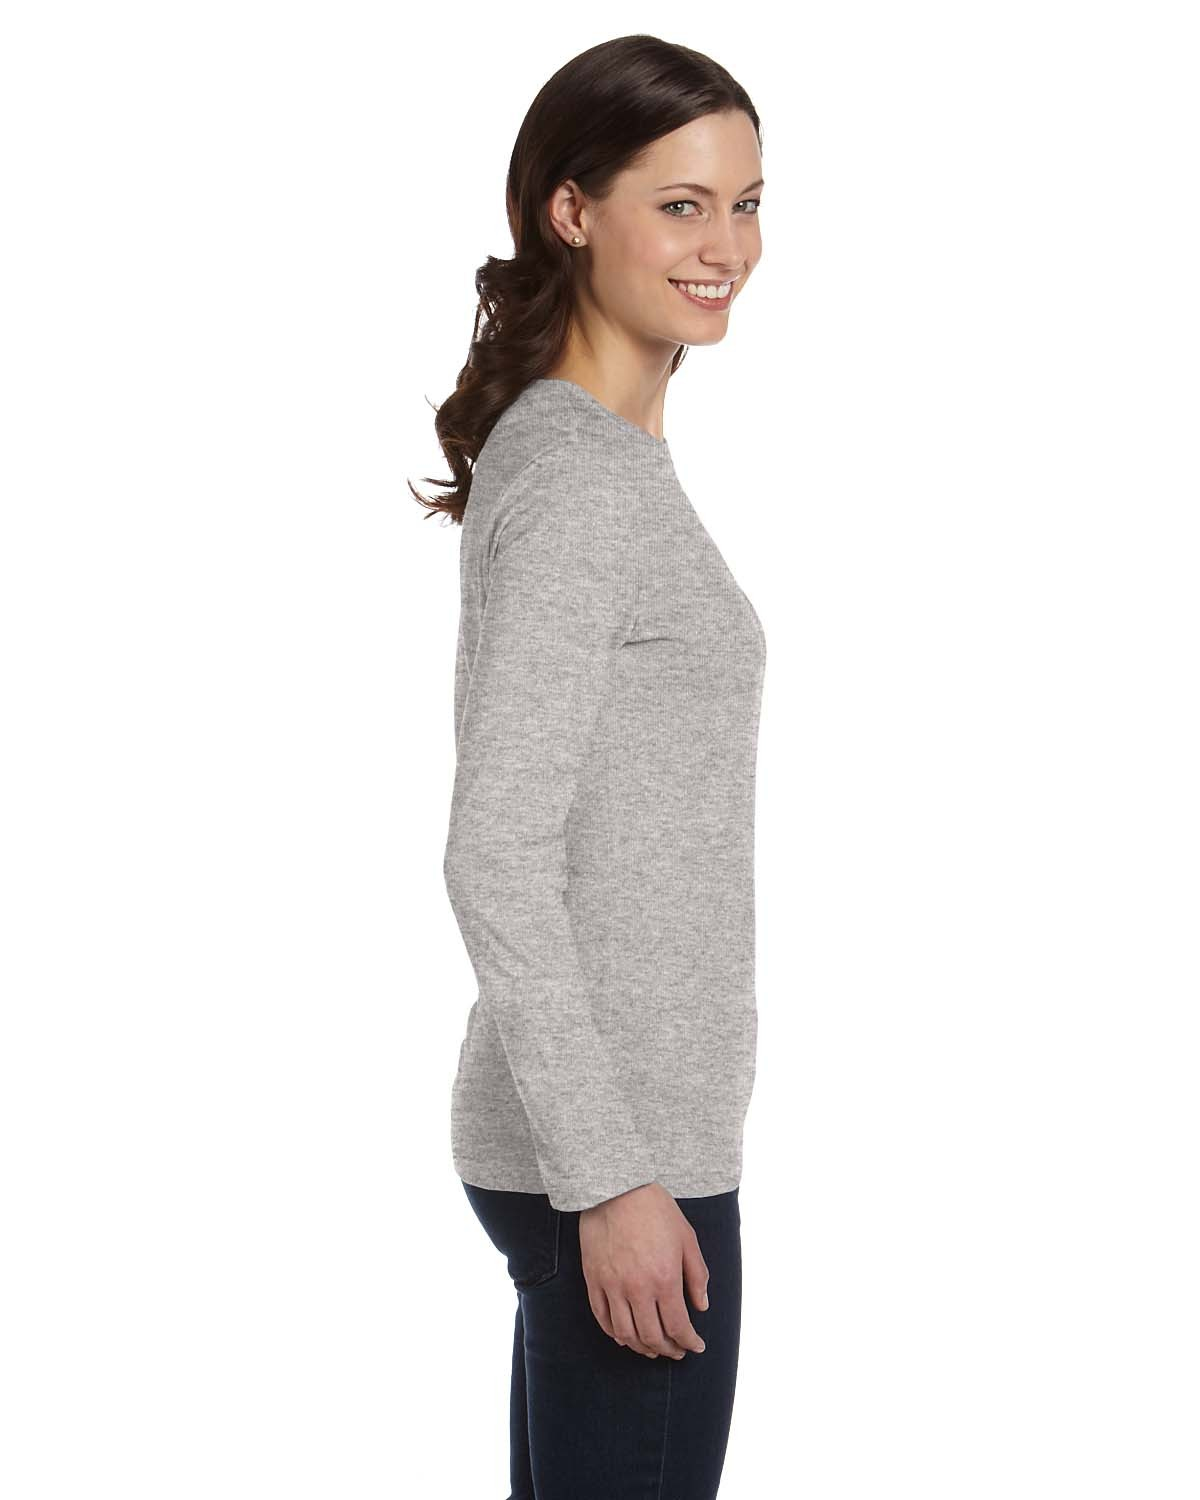 B6500 Bella + Canvas ATHLETIC HEATHER